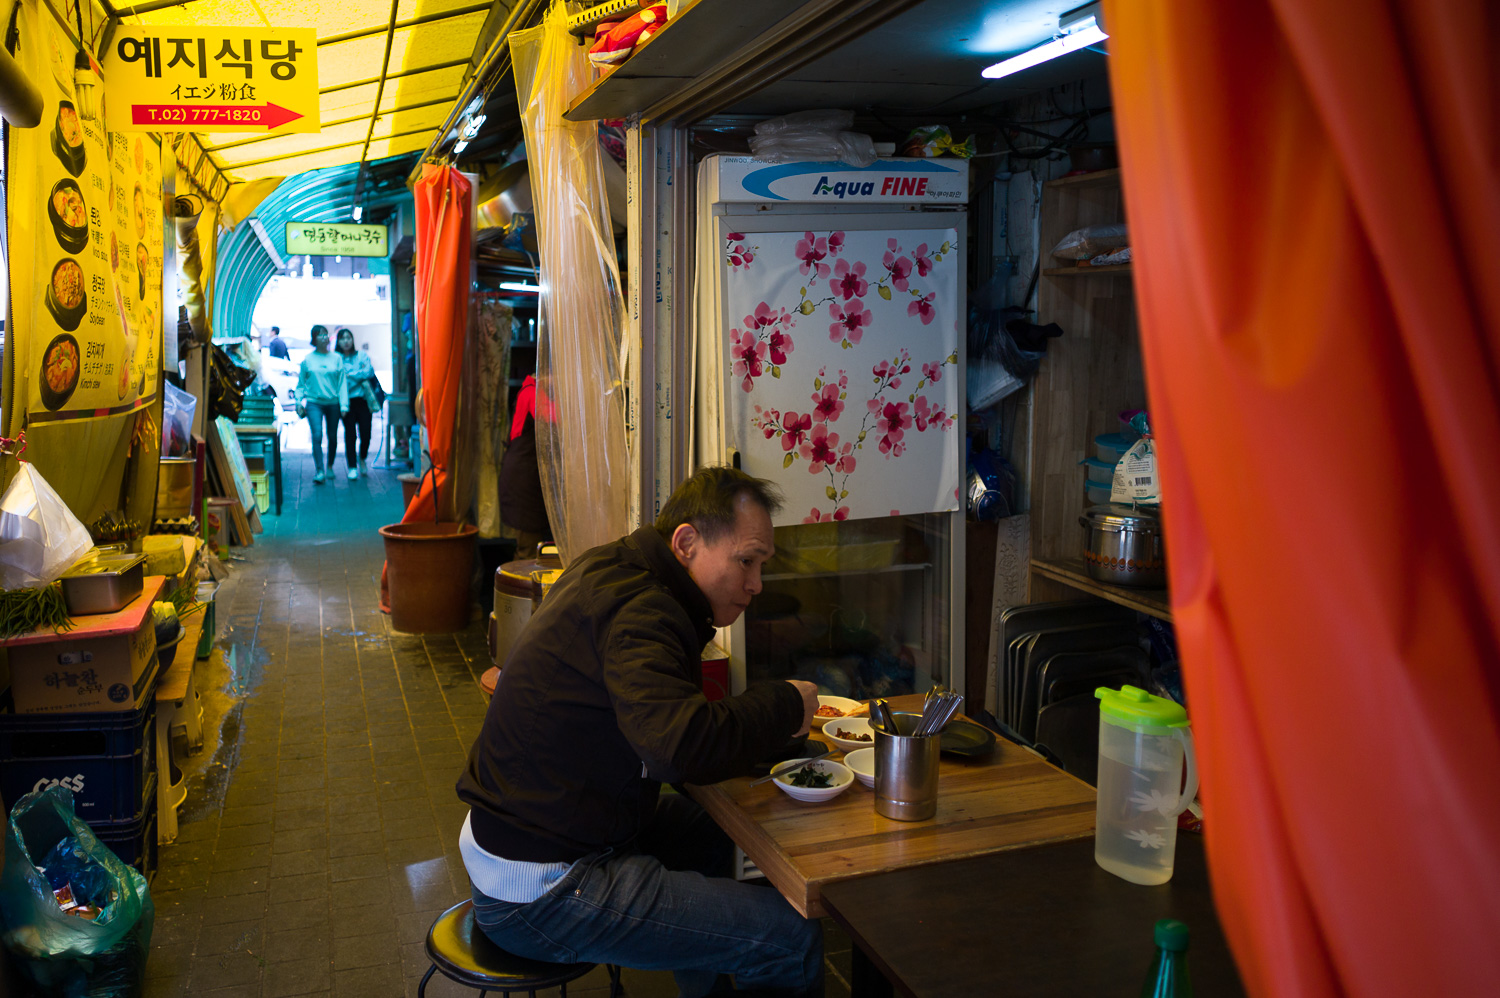 Lone diner, Myeongdong Street photography, Seoul